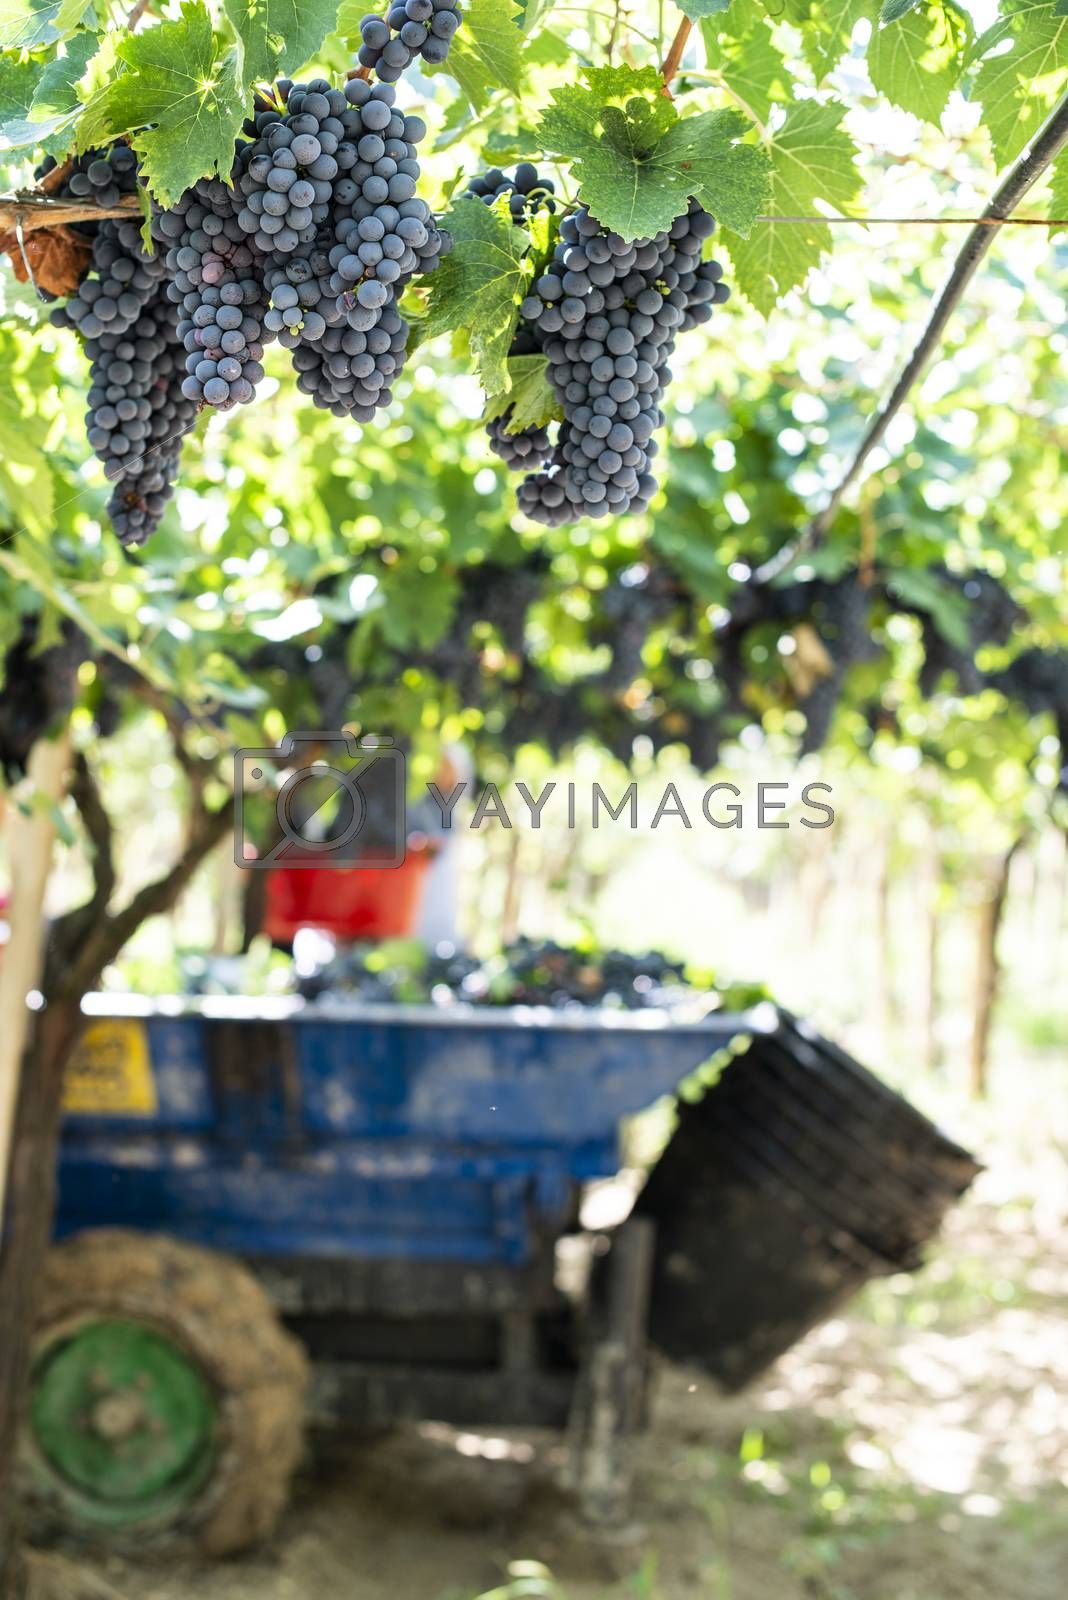 Tractor with trailer filled with red grapes for wine making. Concept for harvesting grapes in vineyard. Inside vineyards.